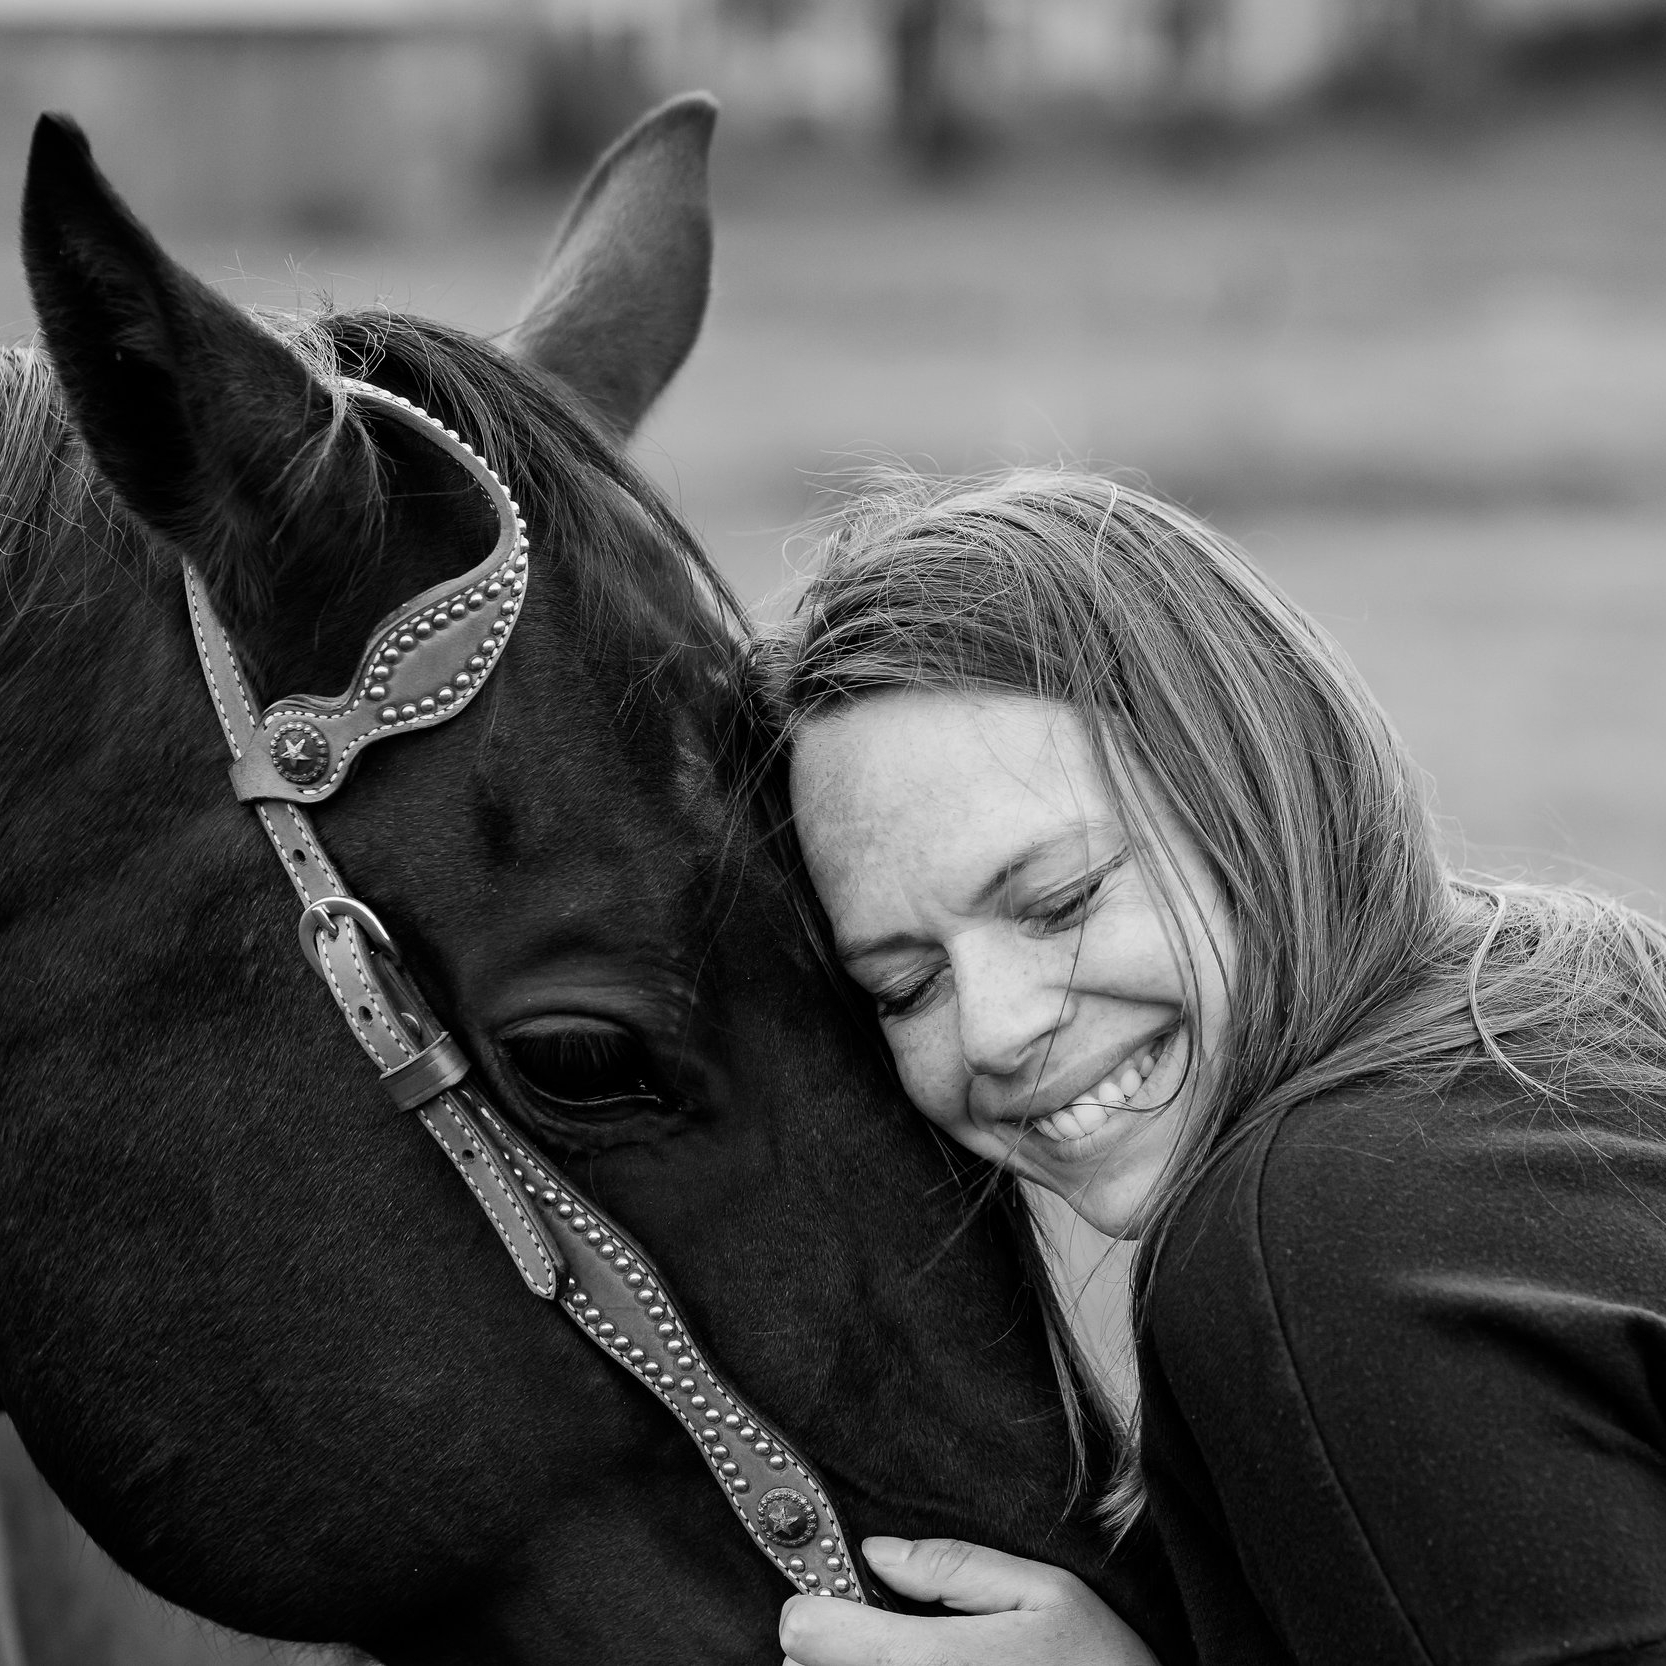 My Story - As a long time horse enthusiast, it seemed only natural that my love for horses and passion for photography collide! And in what better way than a girl and her horse portrait sessions. These sessions are perfect for your senior session, engagements or just because. I raised and trained my own horses and understand how special that connection can be and my training experience helps us work together to capture genuine connection in your images while keeping your horses calm, and if your horse does get a little ansy, no worries, I understand.